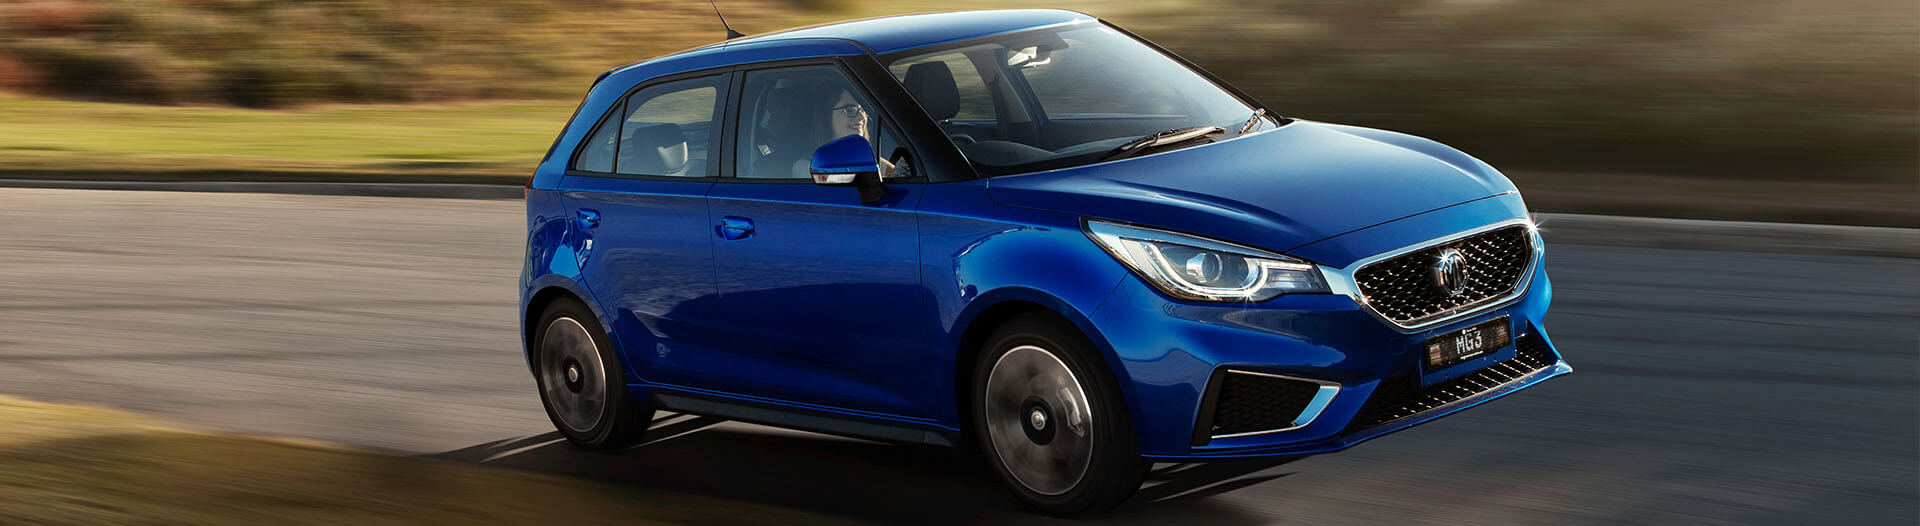 MG3 in blue